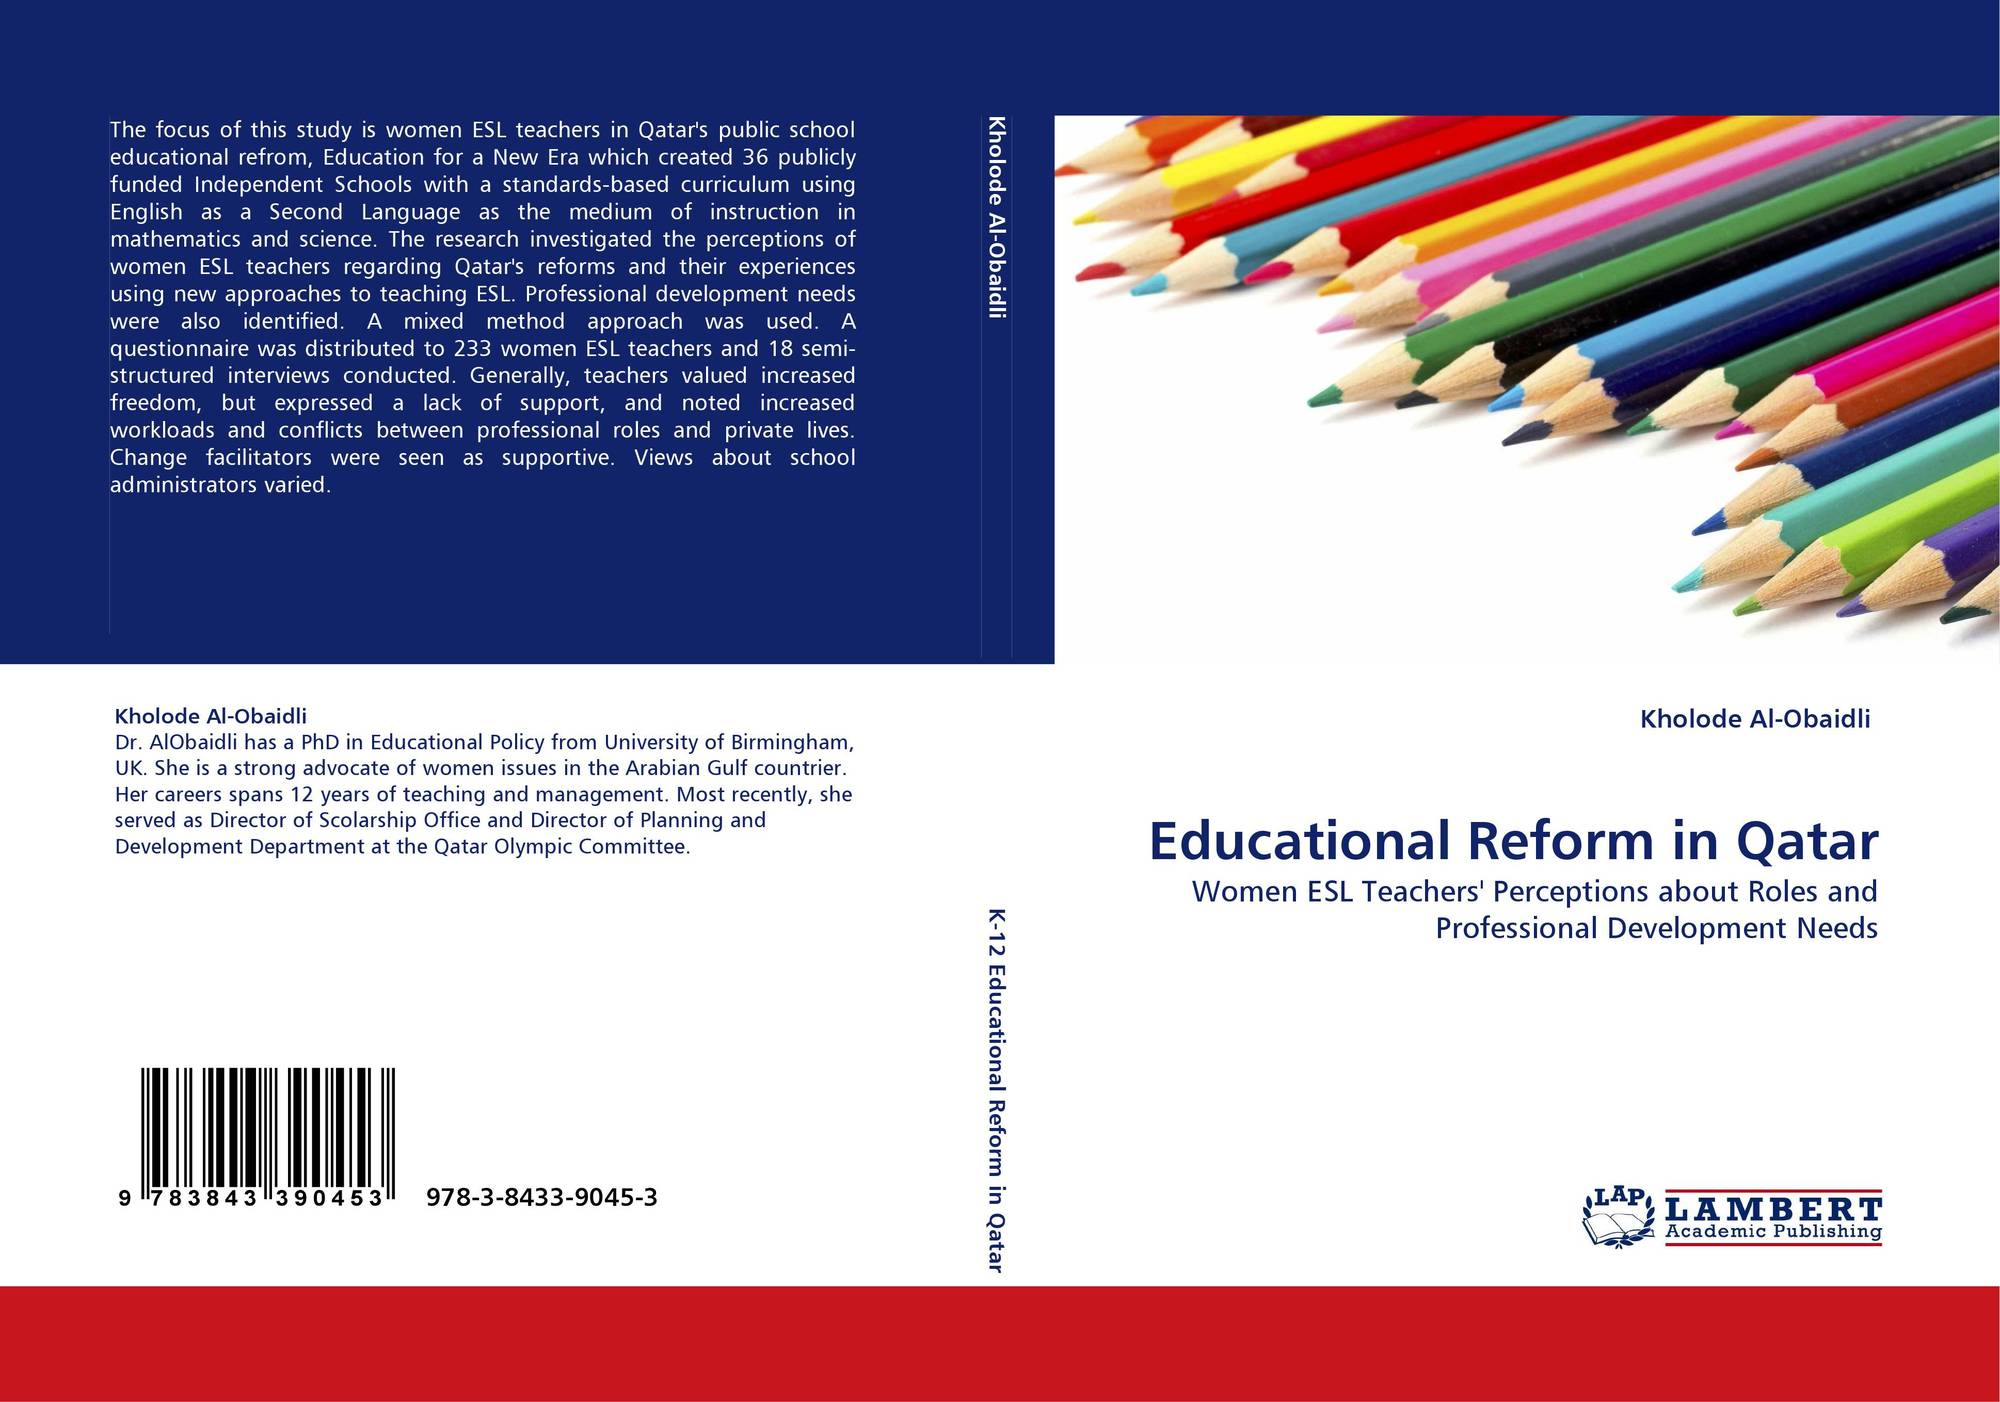 essay about education in qatar Today, qatar offers several job opportunities, improved system of education, better health services, and better wages the income in the country per capita increase consequently led to the population increased and establishment of many companies.